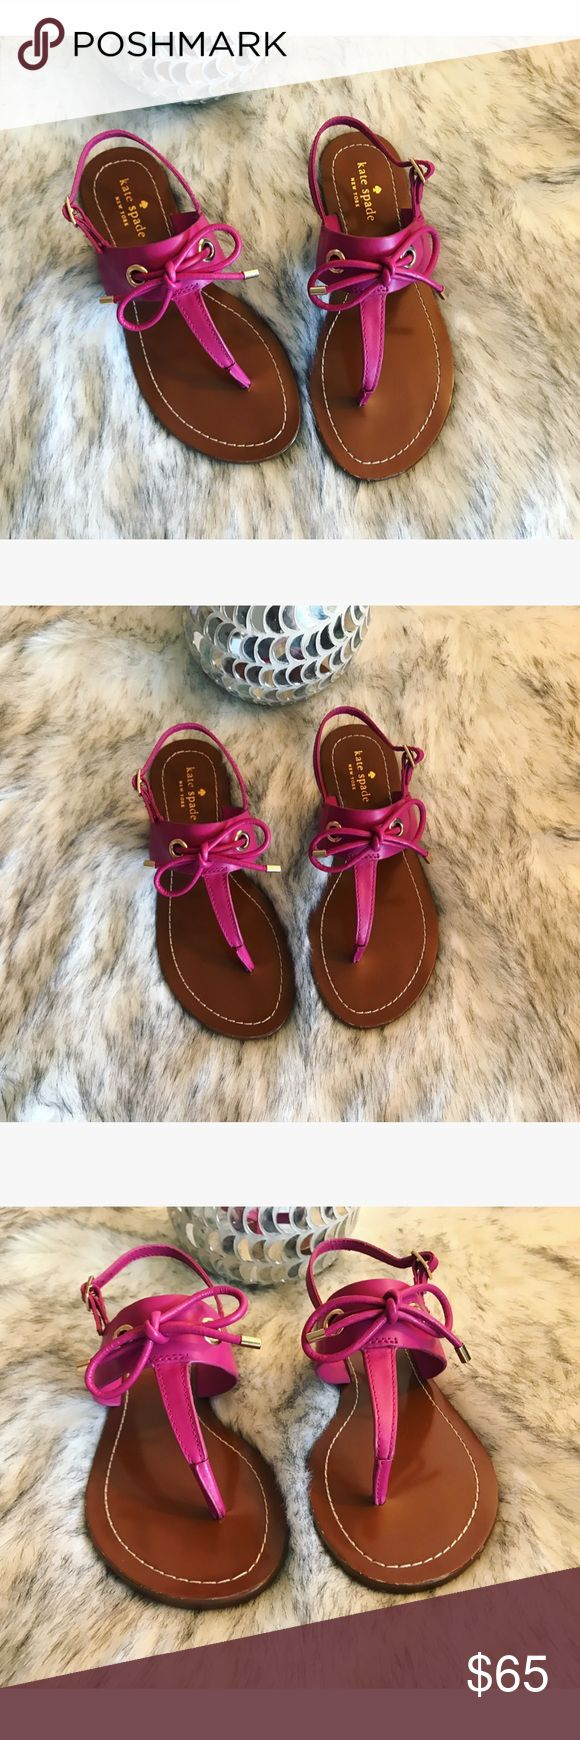 FINAL PRICE 🎀 Gorgeous Kate ♠️ Spade sandals 🎀 💖 Gorgeous Kate Spade sandals in hot pink and size 6.5, new never worn 💖 kate spade Shoes Sandals